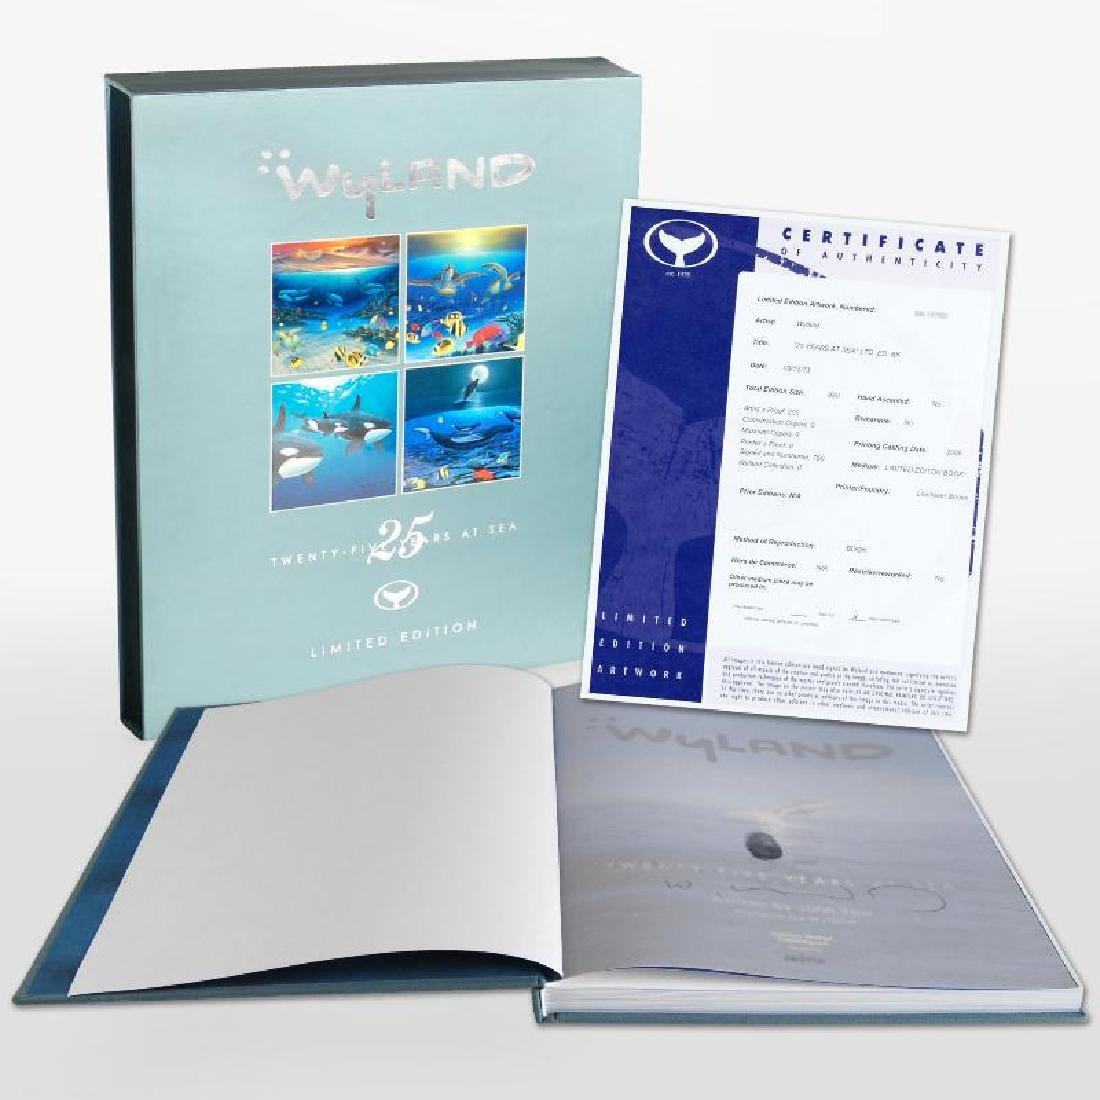 Wyland: 25 Years at Sea (2006) Limited Edition